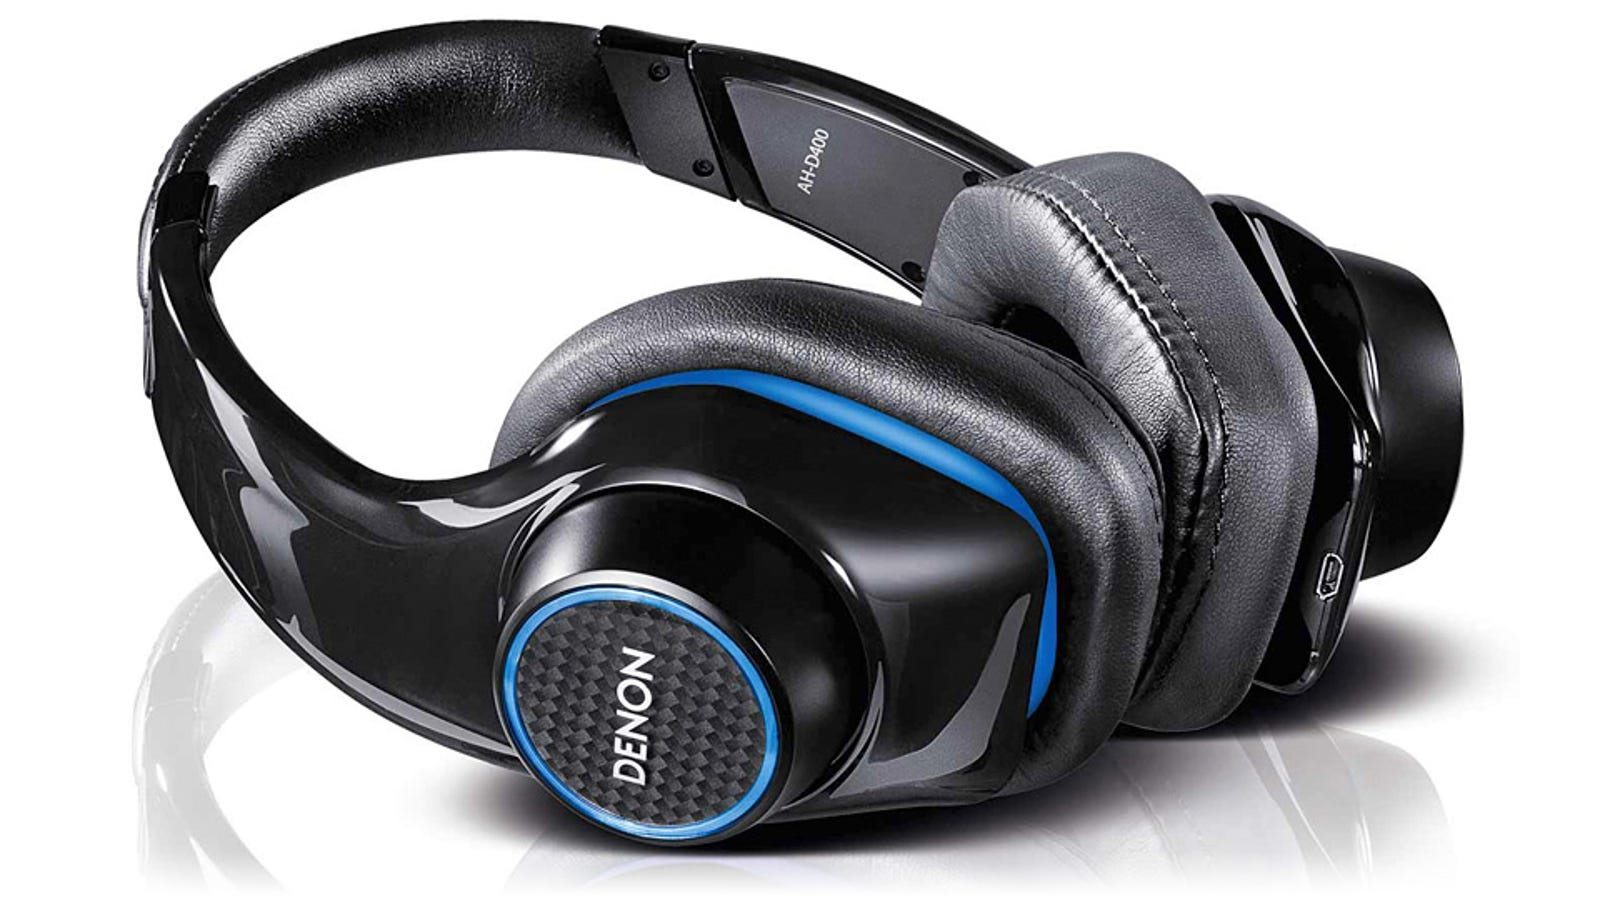 taotronics phobos bluetooth headphones